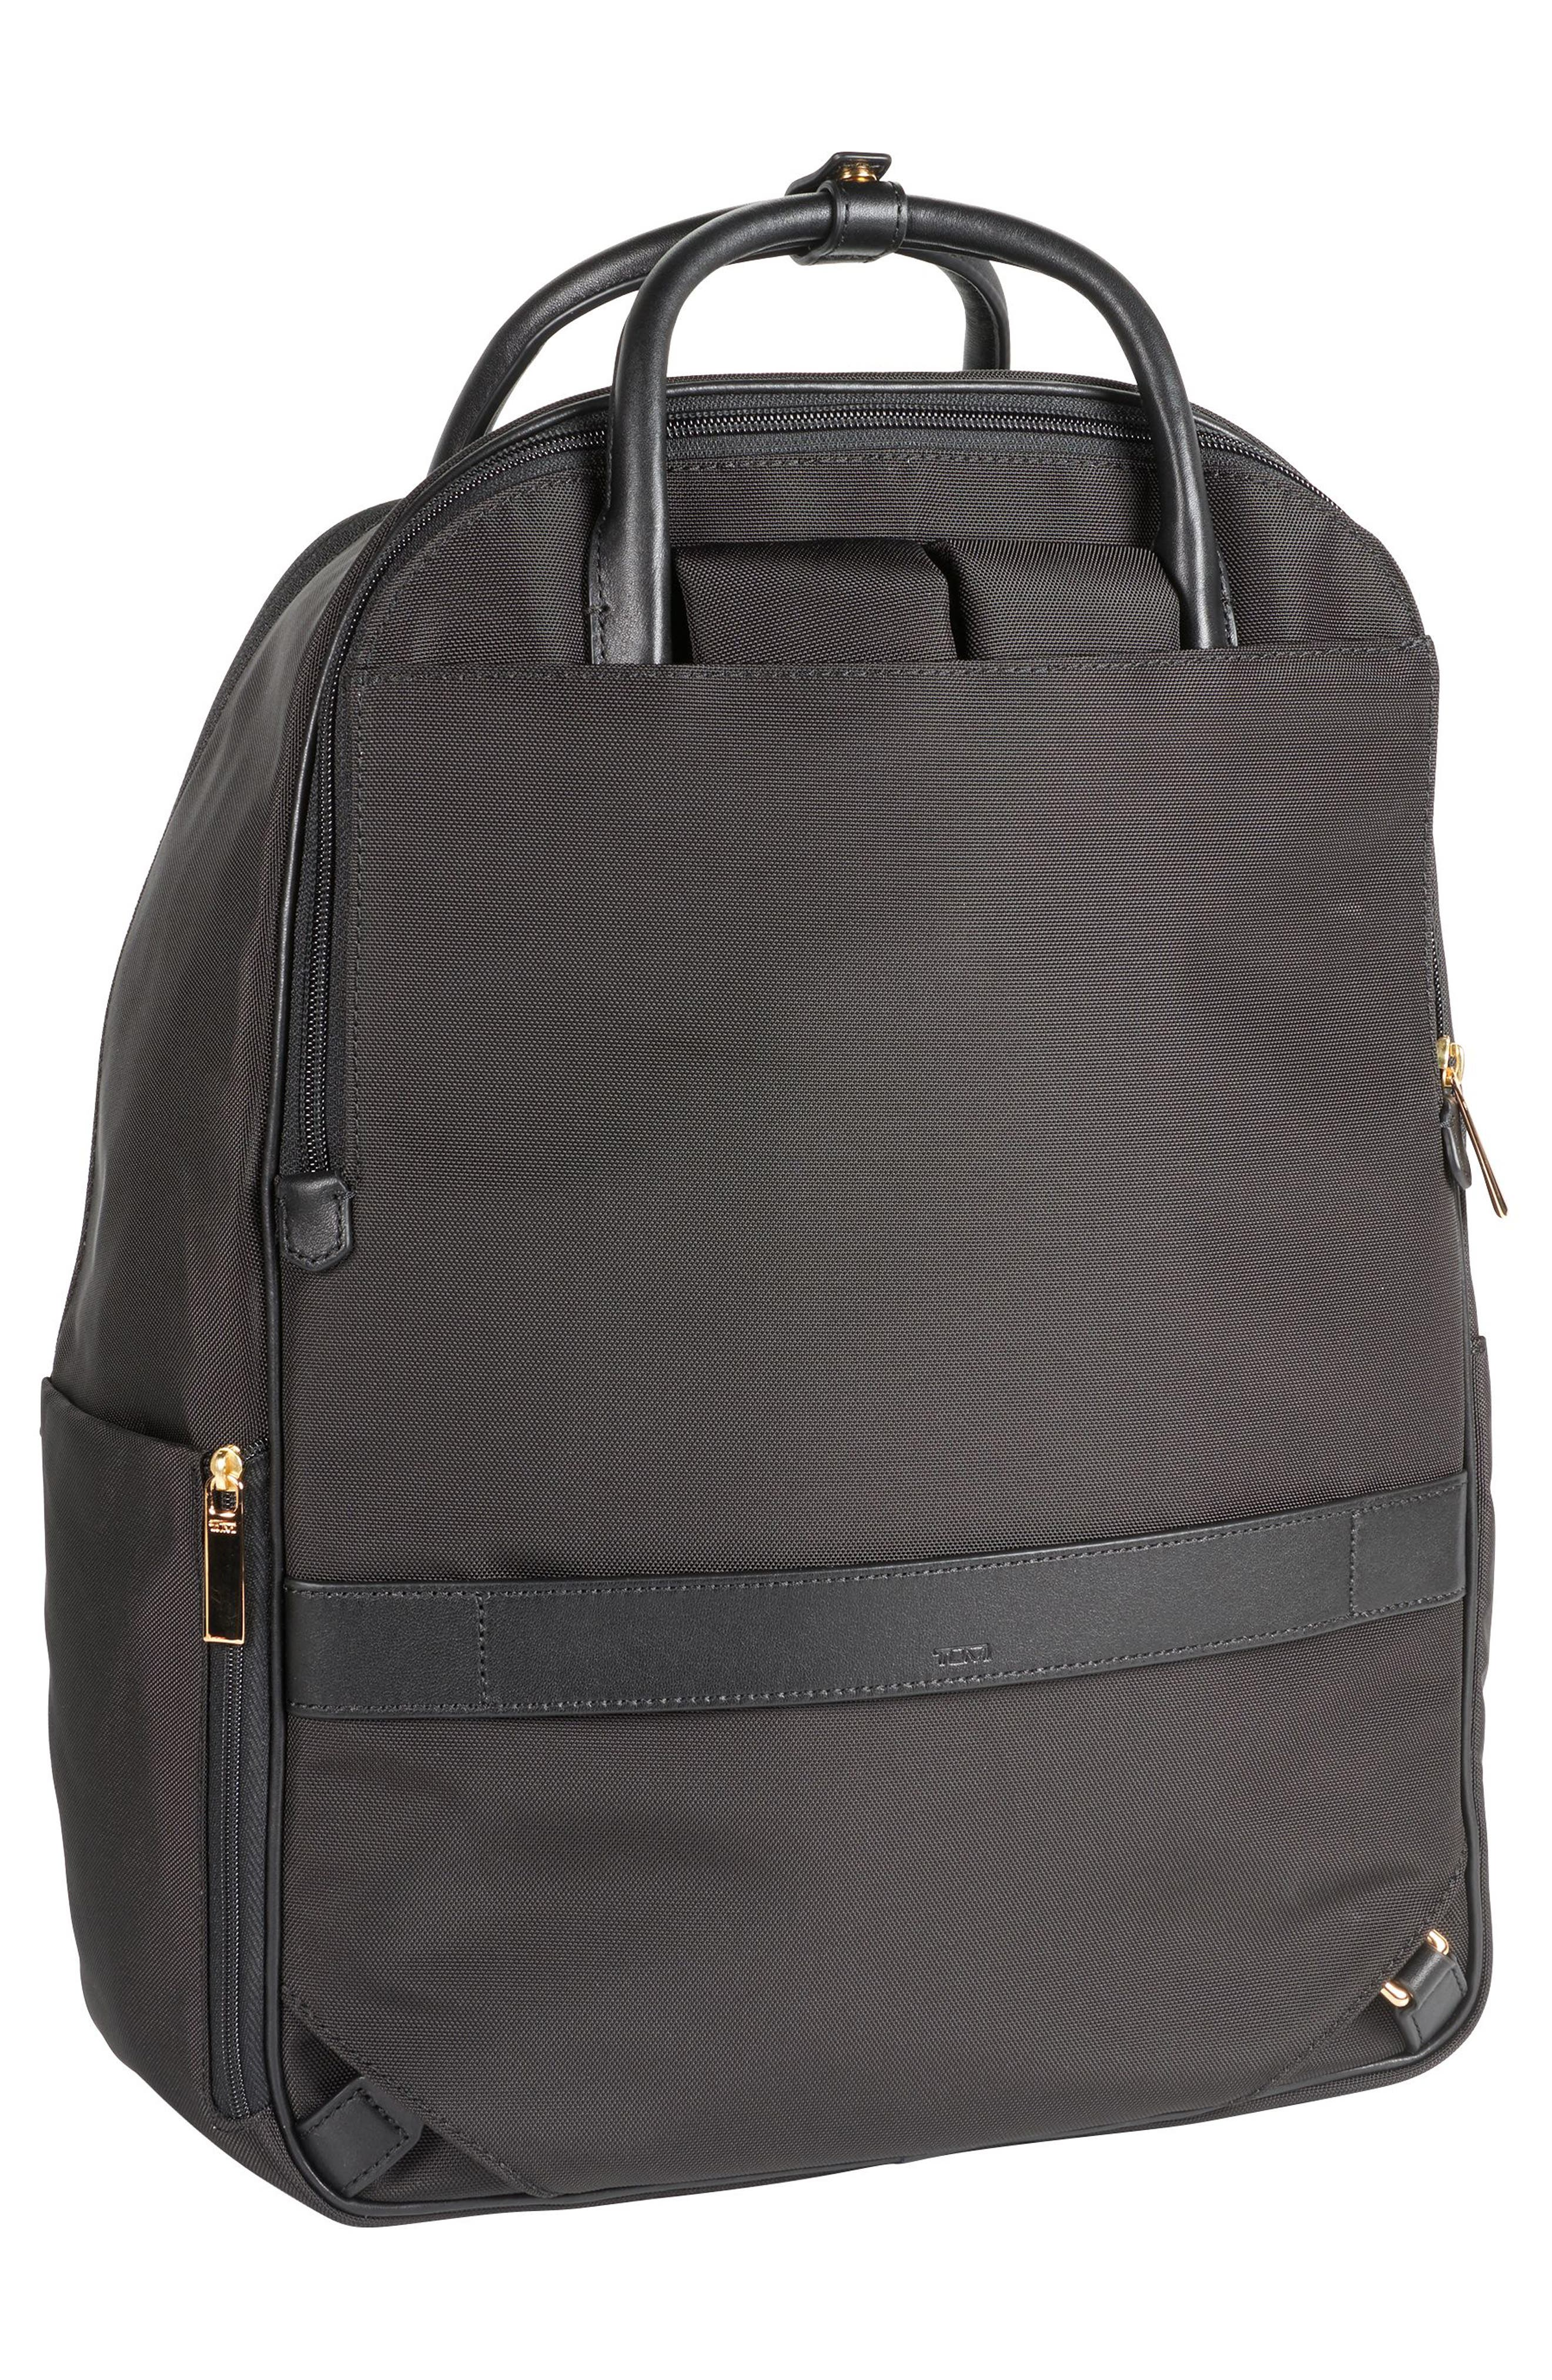 Larkin - Paterson Convertible Nylon Backpack,                             Alternate thumbnail 2, color,                             001